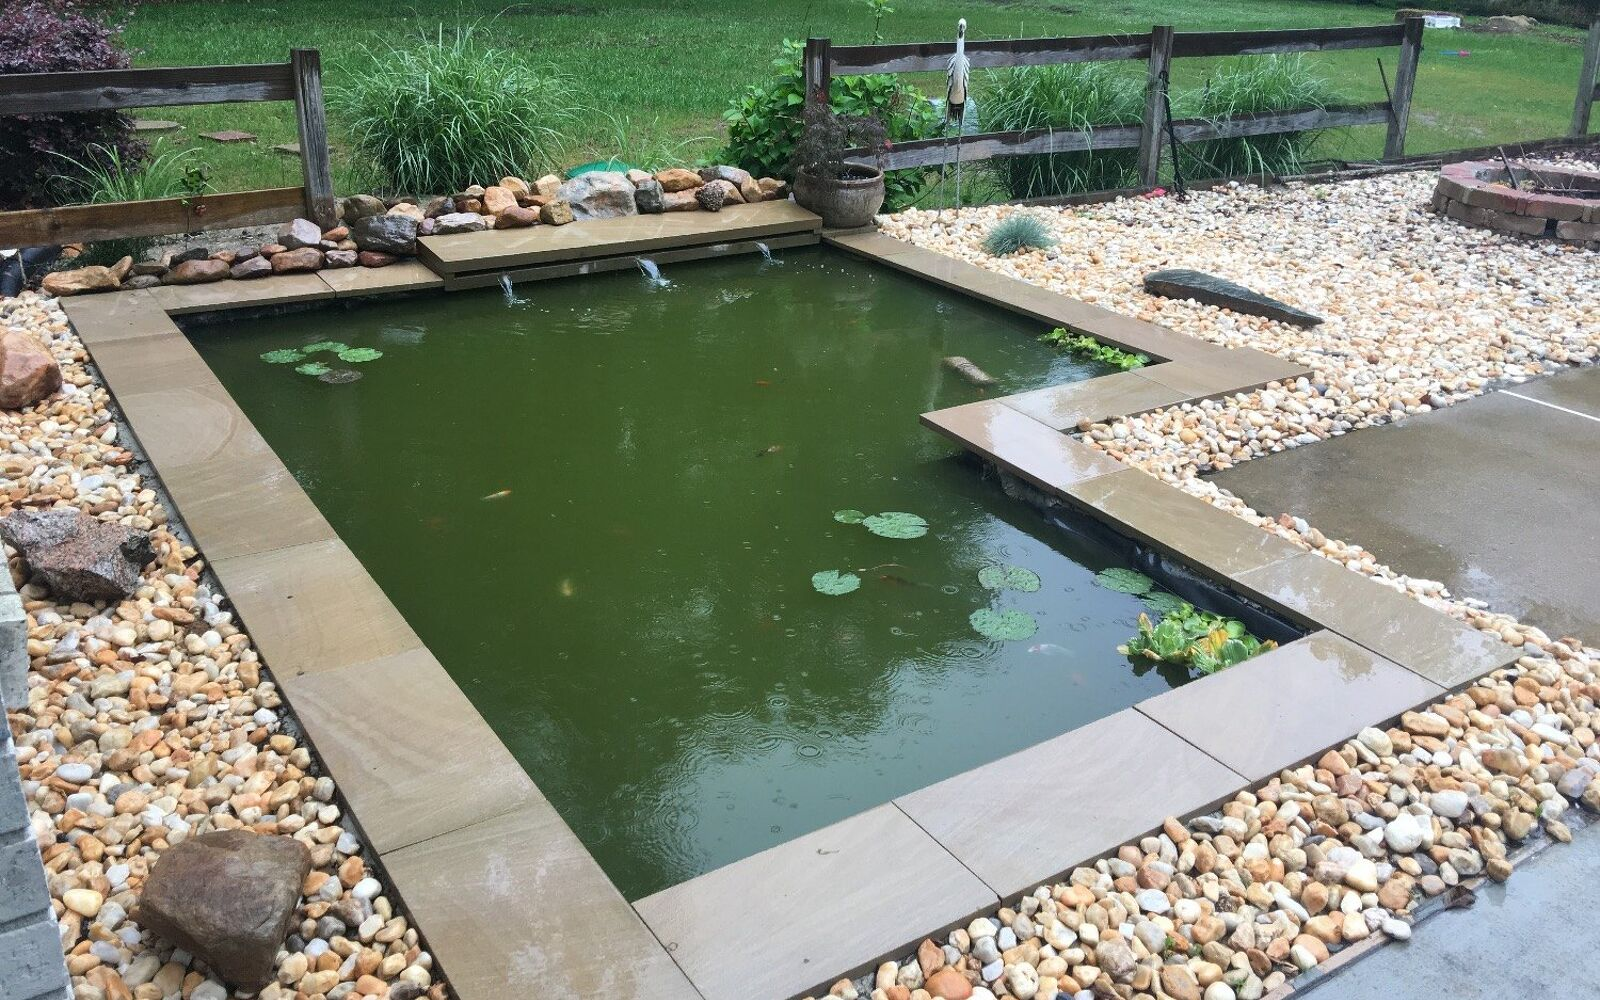 s upgrade your backyard with these 30 clever ideas, Add a modern koi pond on a budget